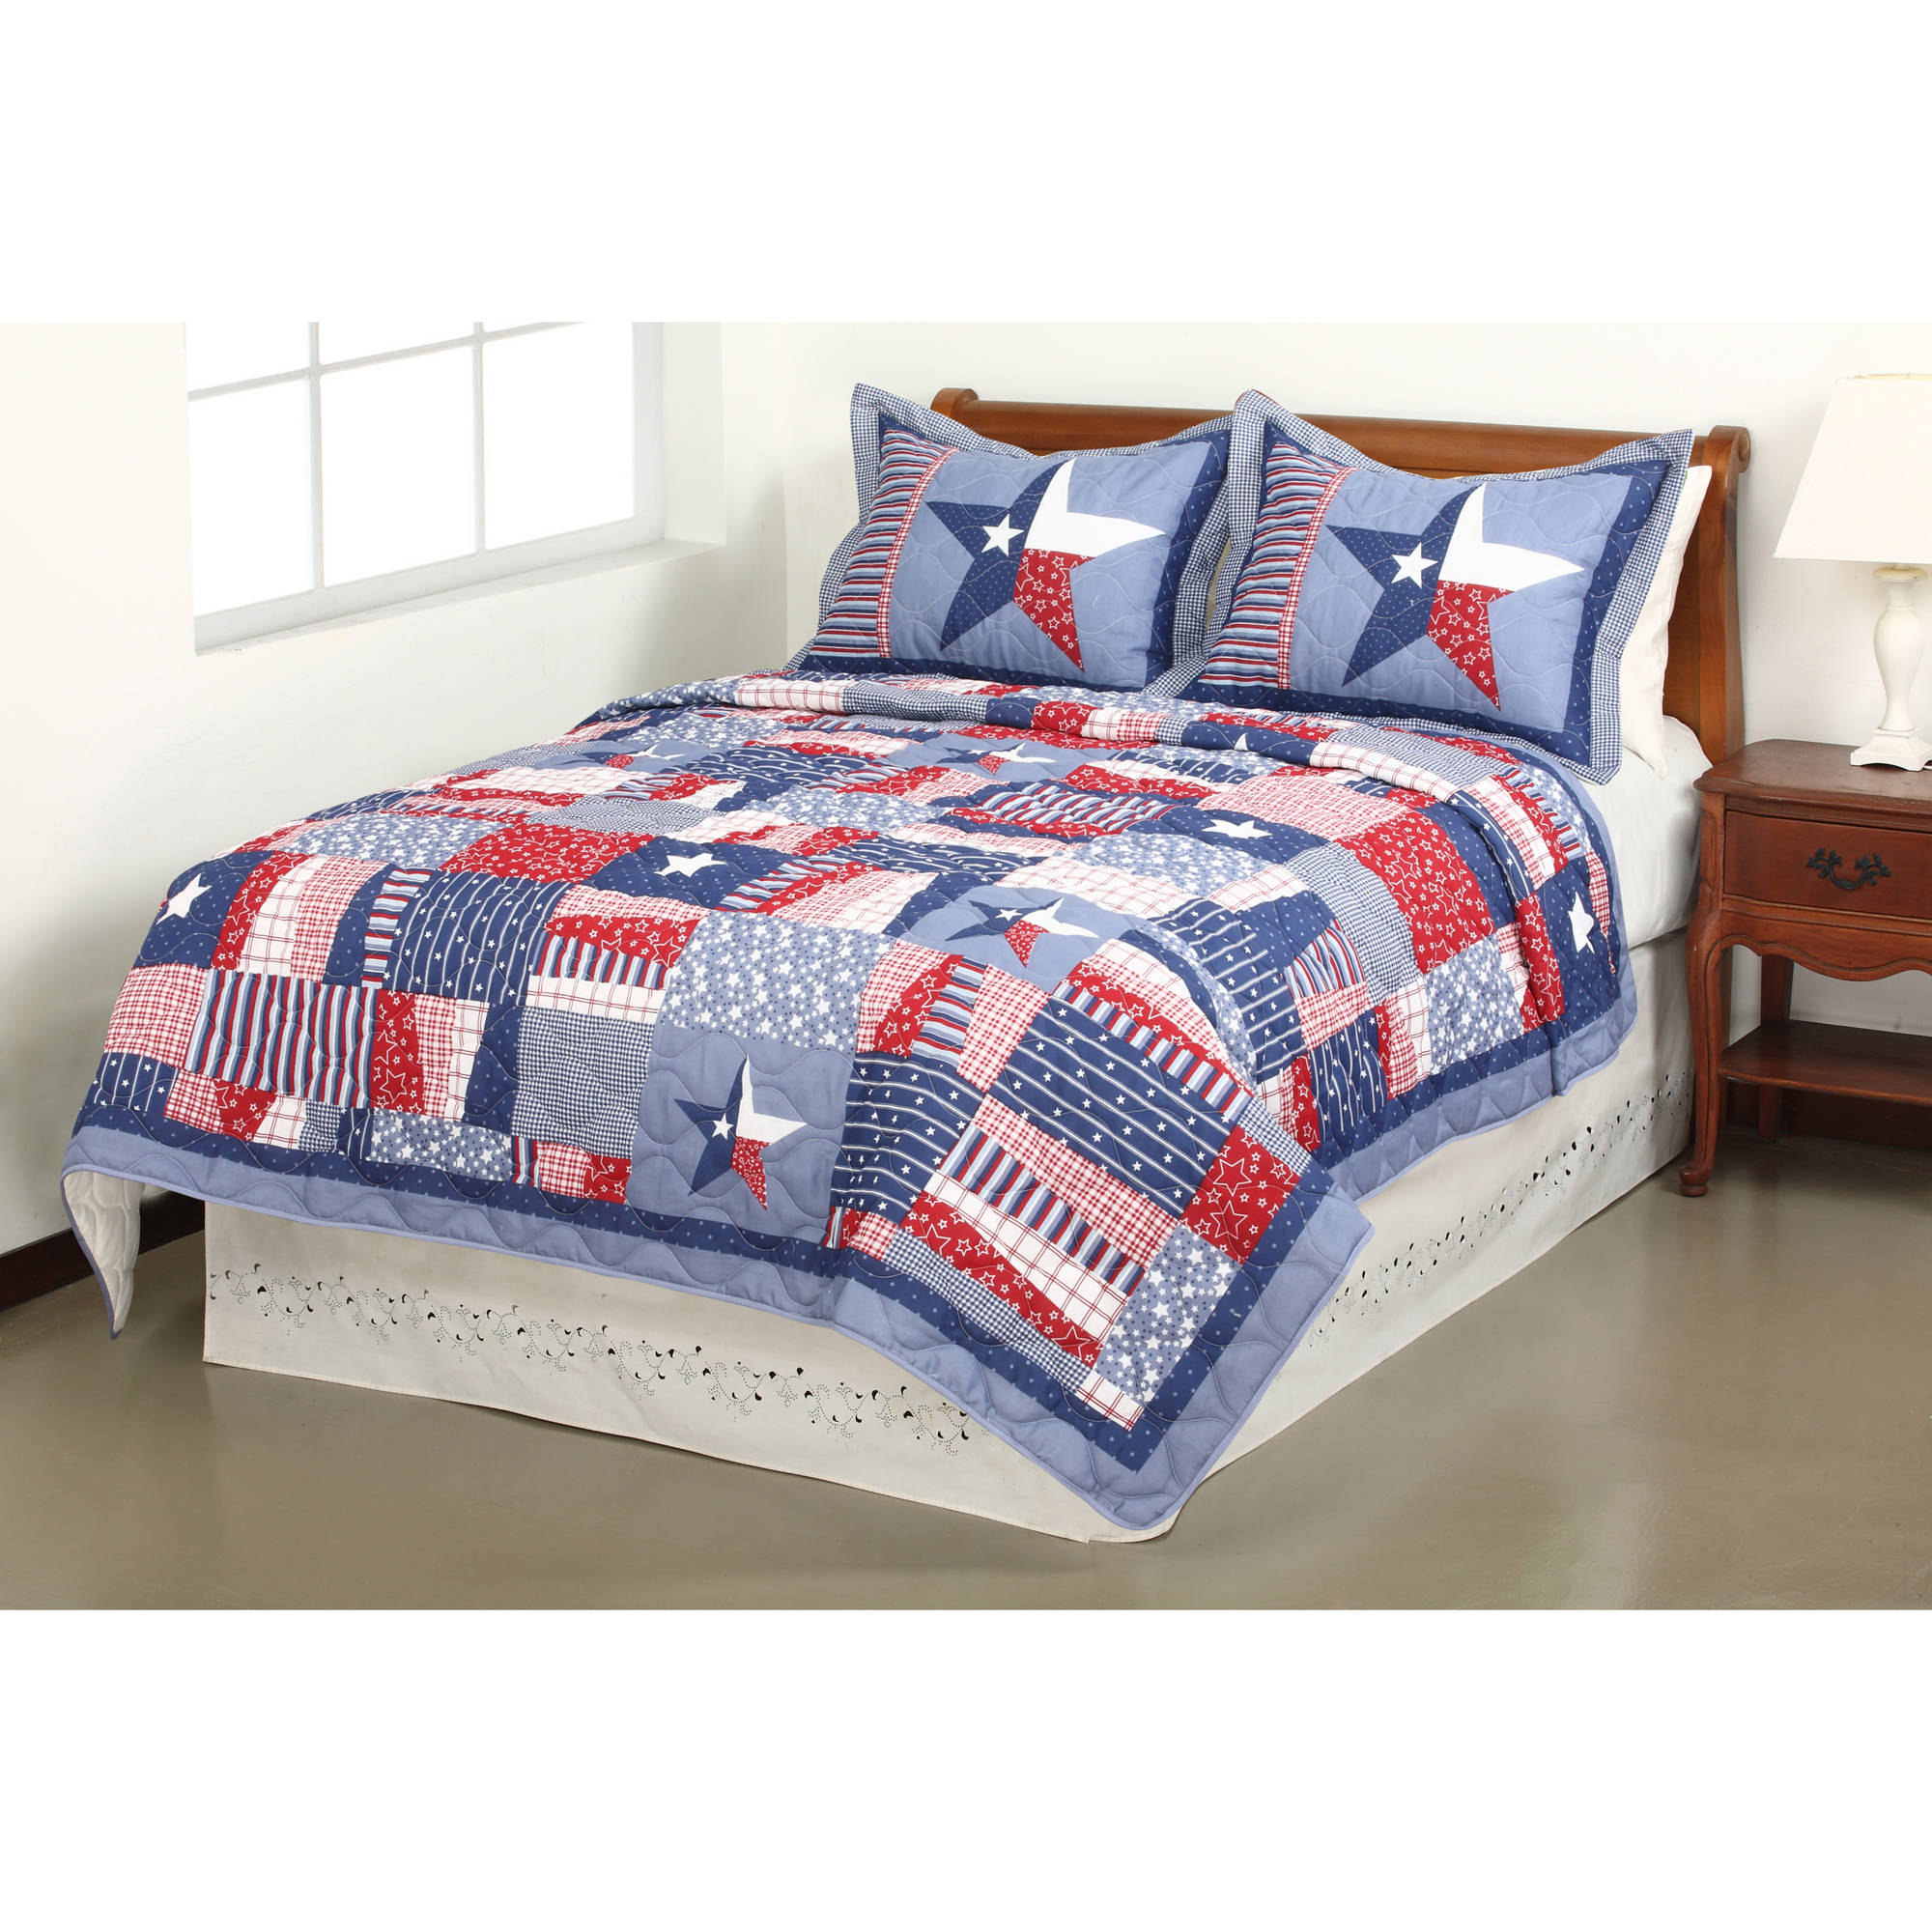 Mainstays Quilt Collection, Stars and Stripes